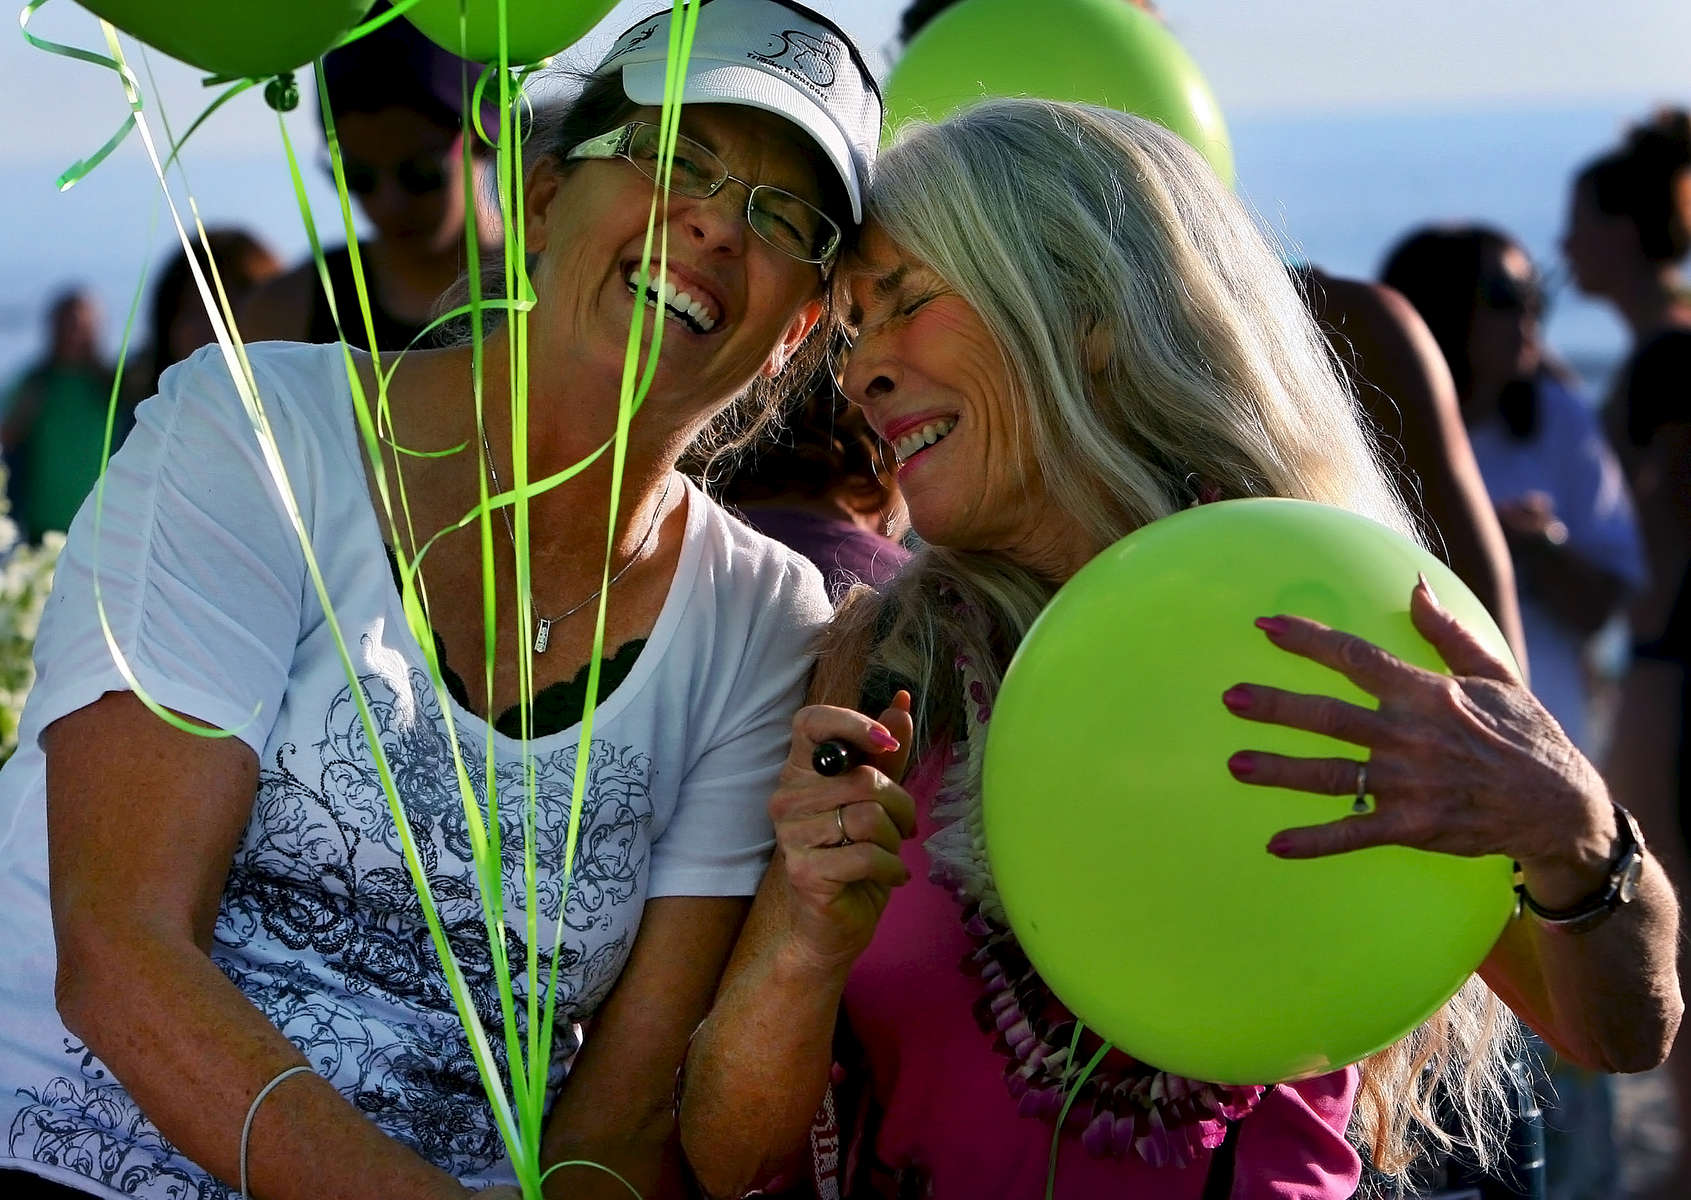 Candace Ransom shares a moment with her friend Linda Kirschner while writing the number 9 on a set of balloons in memory of her son Lucas Ransom before a paddle-out memorial near the Oceanside, Calif. pier. The number 9 was Lucas's water polo number at Perris High School in Riverside County. The UC Santa Barbara student was killed after being bitten by a shark while surfing with friends off the coast of  Santa Barbara. (The Press-Enterprise/ Mark Zaleski)